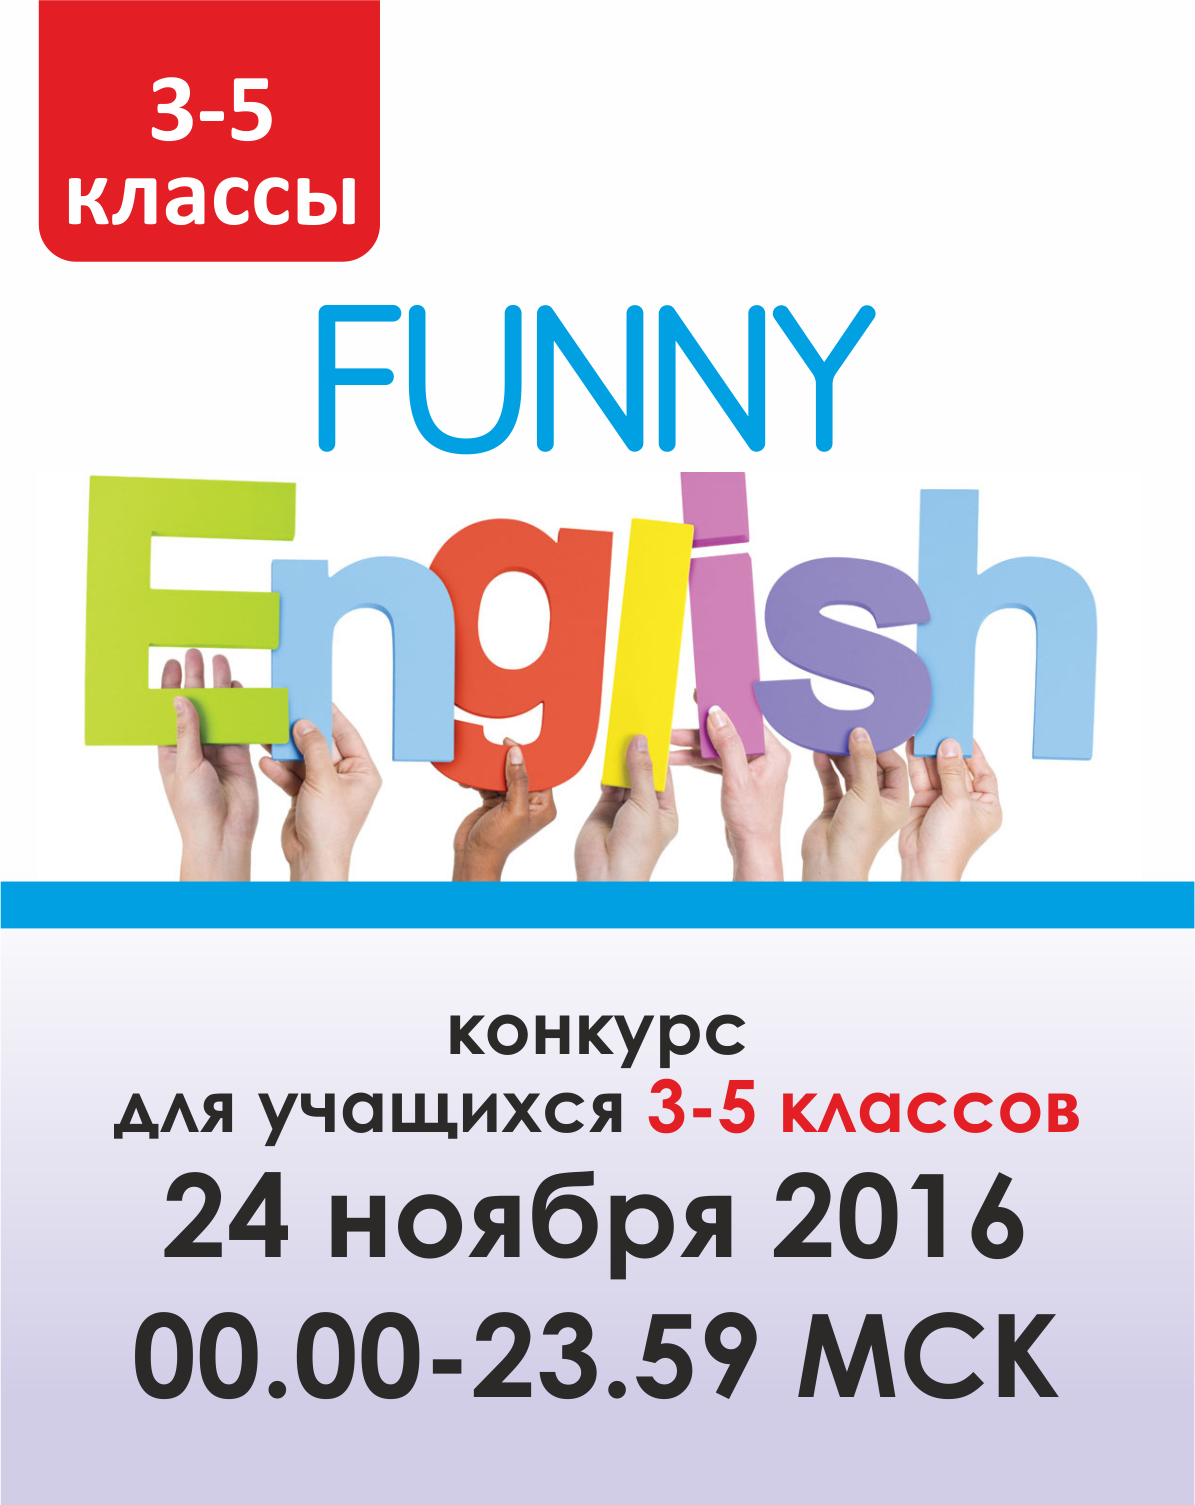 Funny English (3-5 классы)